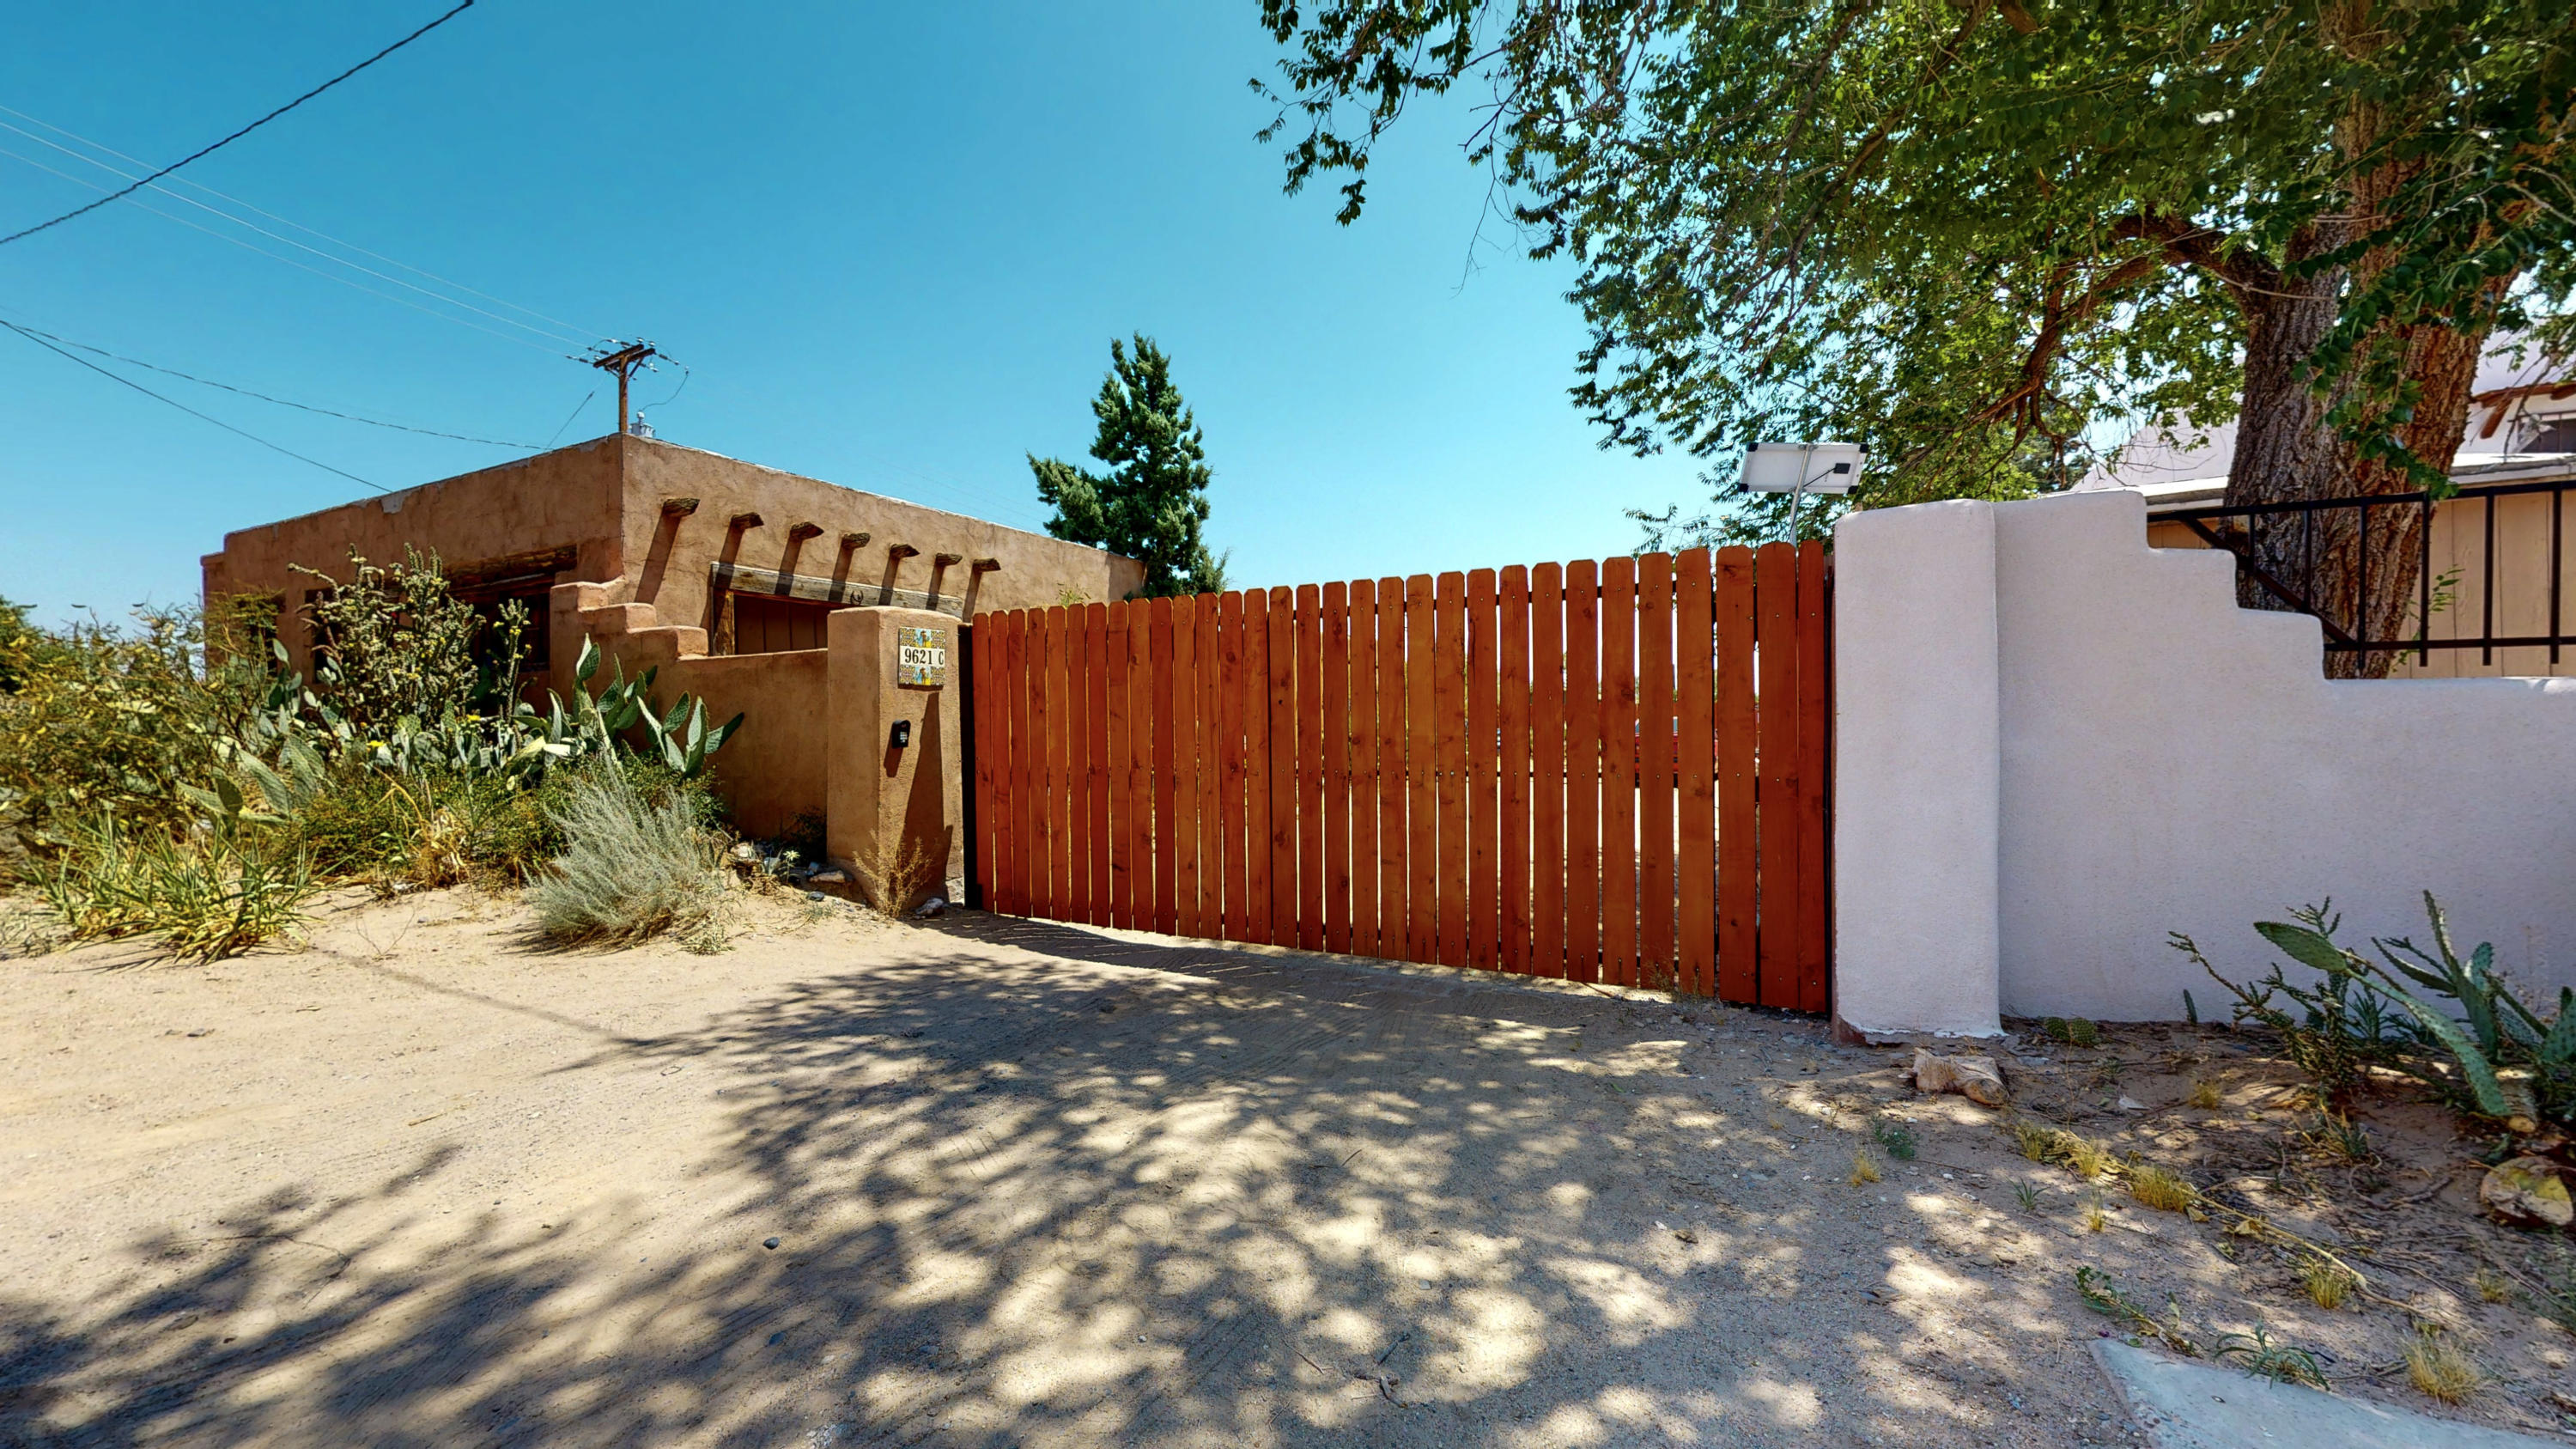 One of the Original Adobe Homes along Route 66. This 3 bedroom 1 bathroom home is fully enclosed and has lots of space for your creativity. 1 car garage with tons of storage ready for your finishes. Sellers upgrades include: bathroom, kitchen & dining room extension, security bars, wood fence with metal gate. This home is being offered WHERE-IS / AS-IS. Schedule a private showing or take a virtual walk-through tour today!